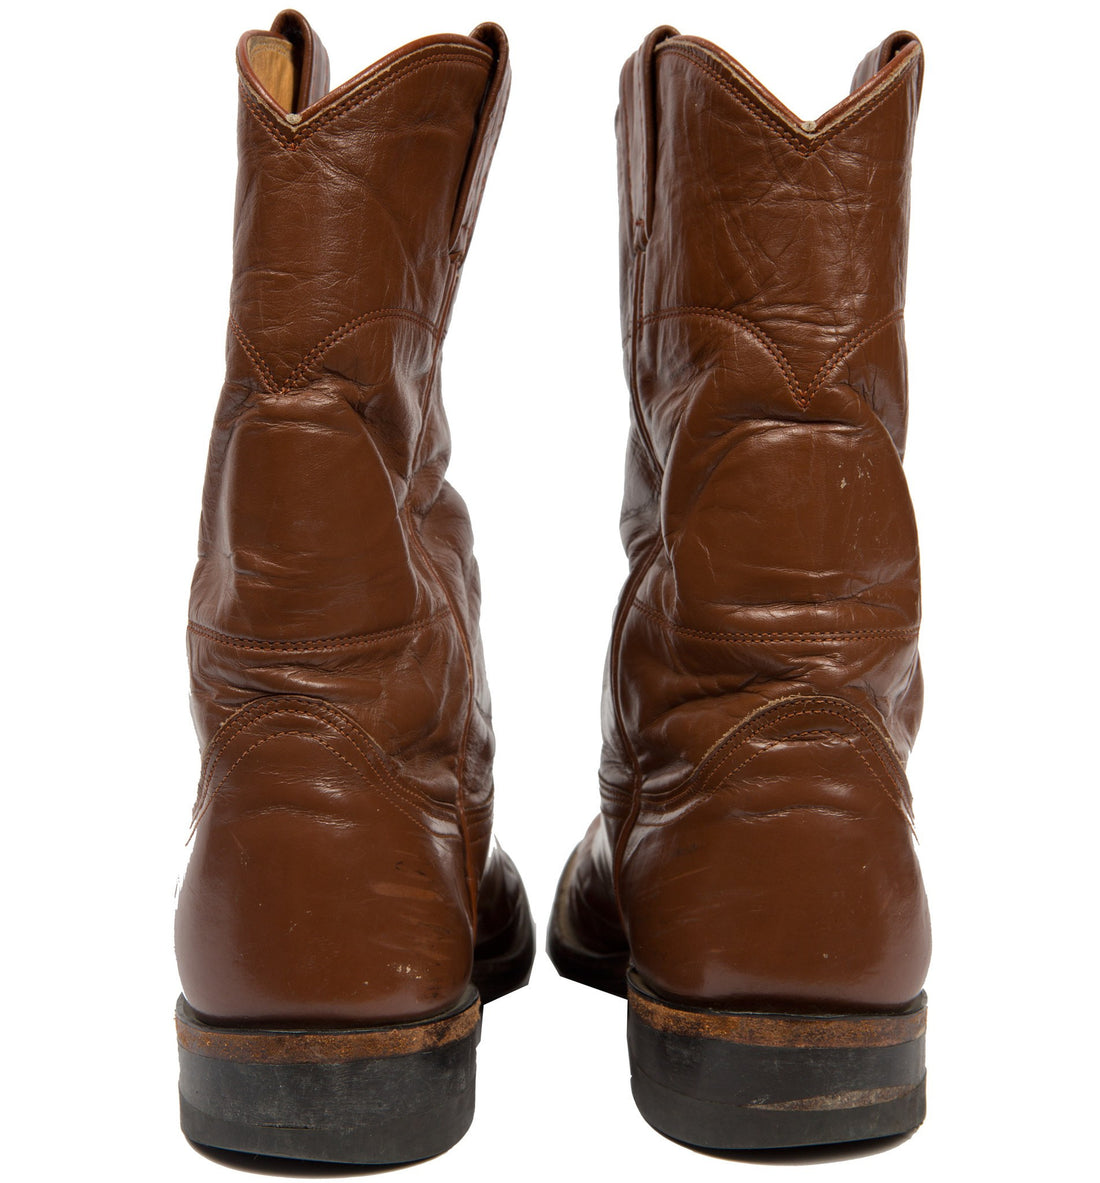 Vintage Nocona Brown Boots, Size 6.5 - Vintage: Women's: Shoes - Iron and Resin